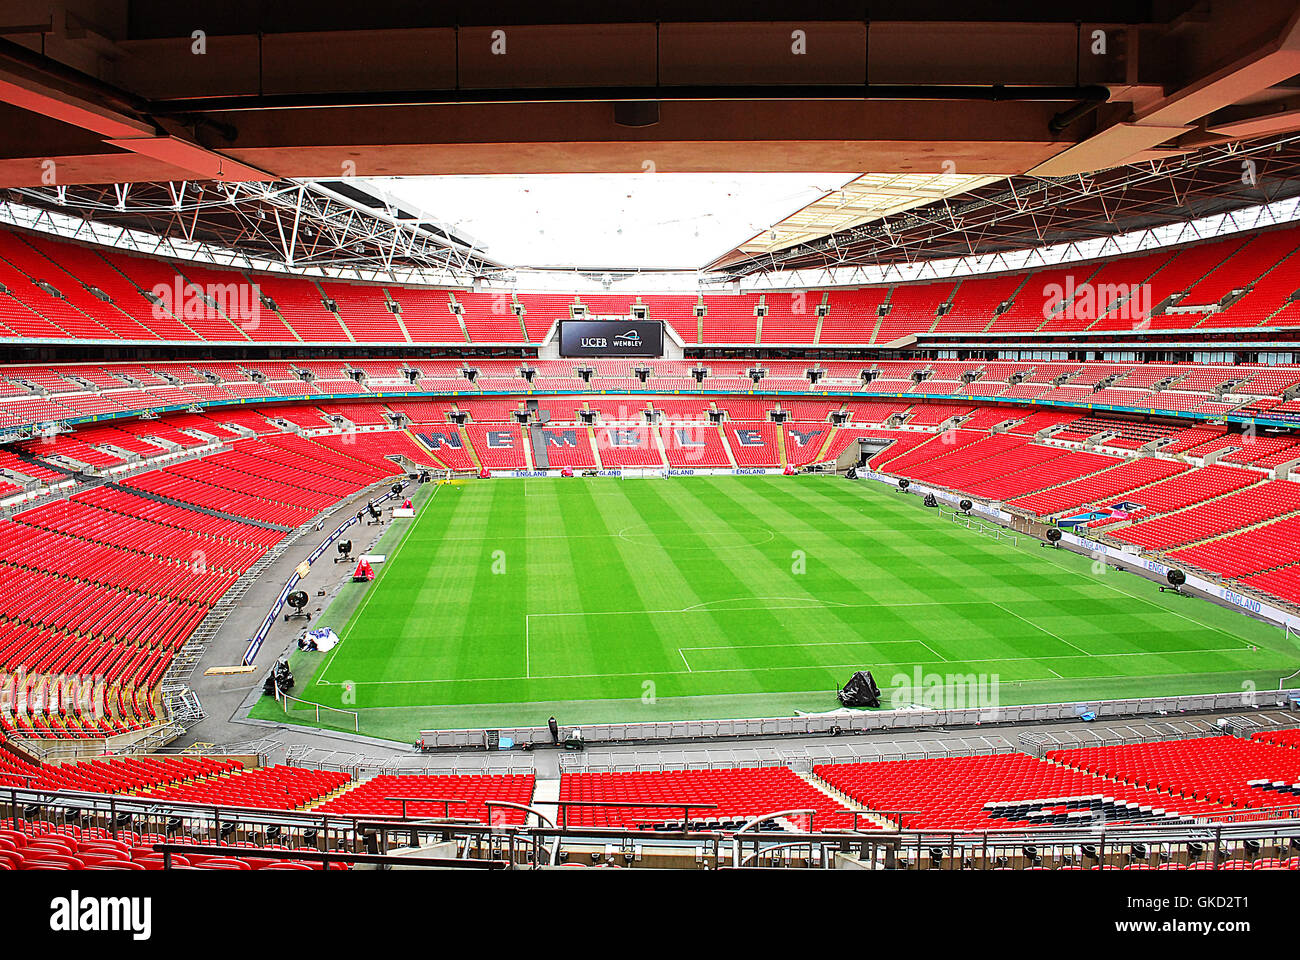 Bobby Moore photocall at Wembley Stadium. Attended by legendary football players George Cohen and Gordon Banks. - Stock Image